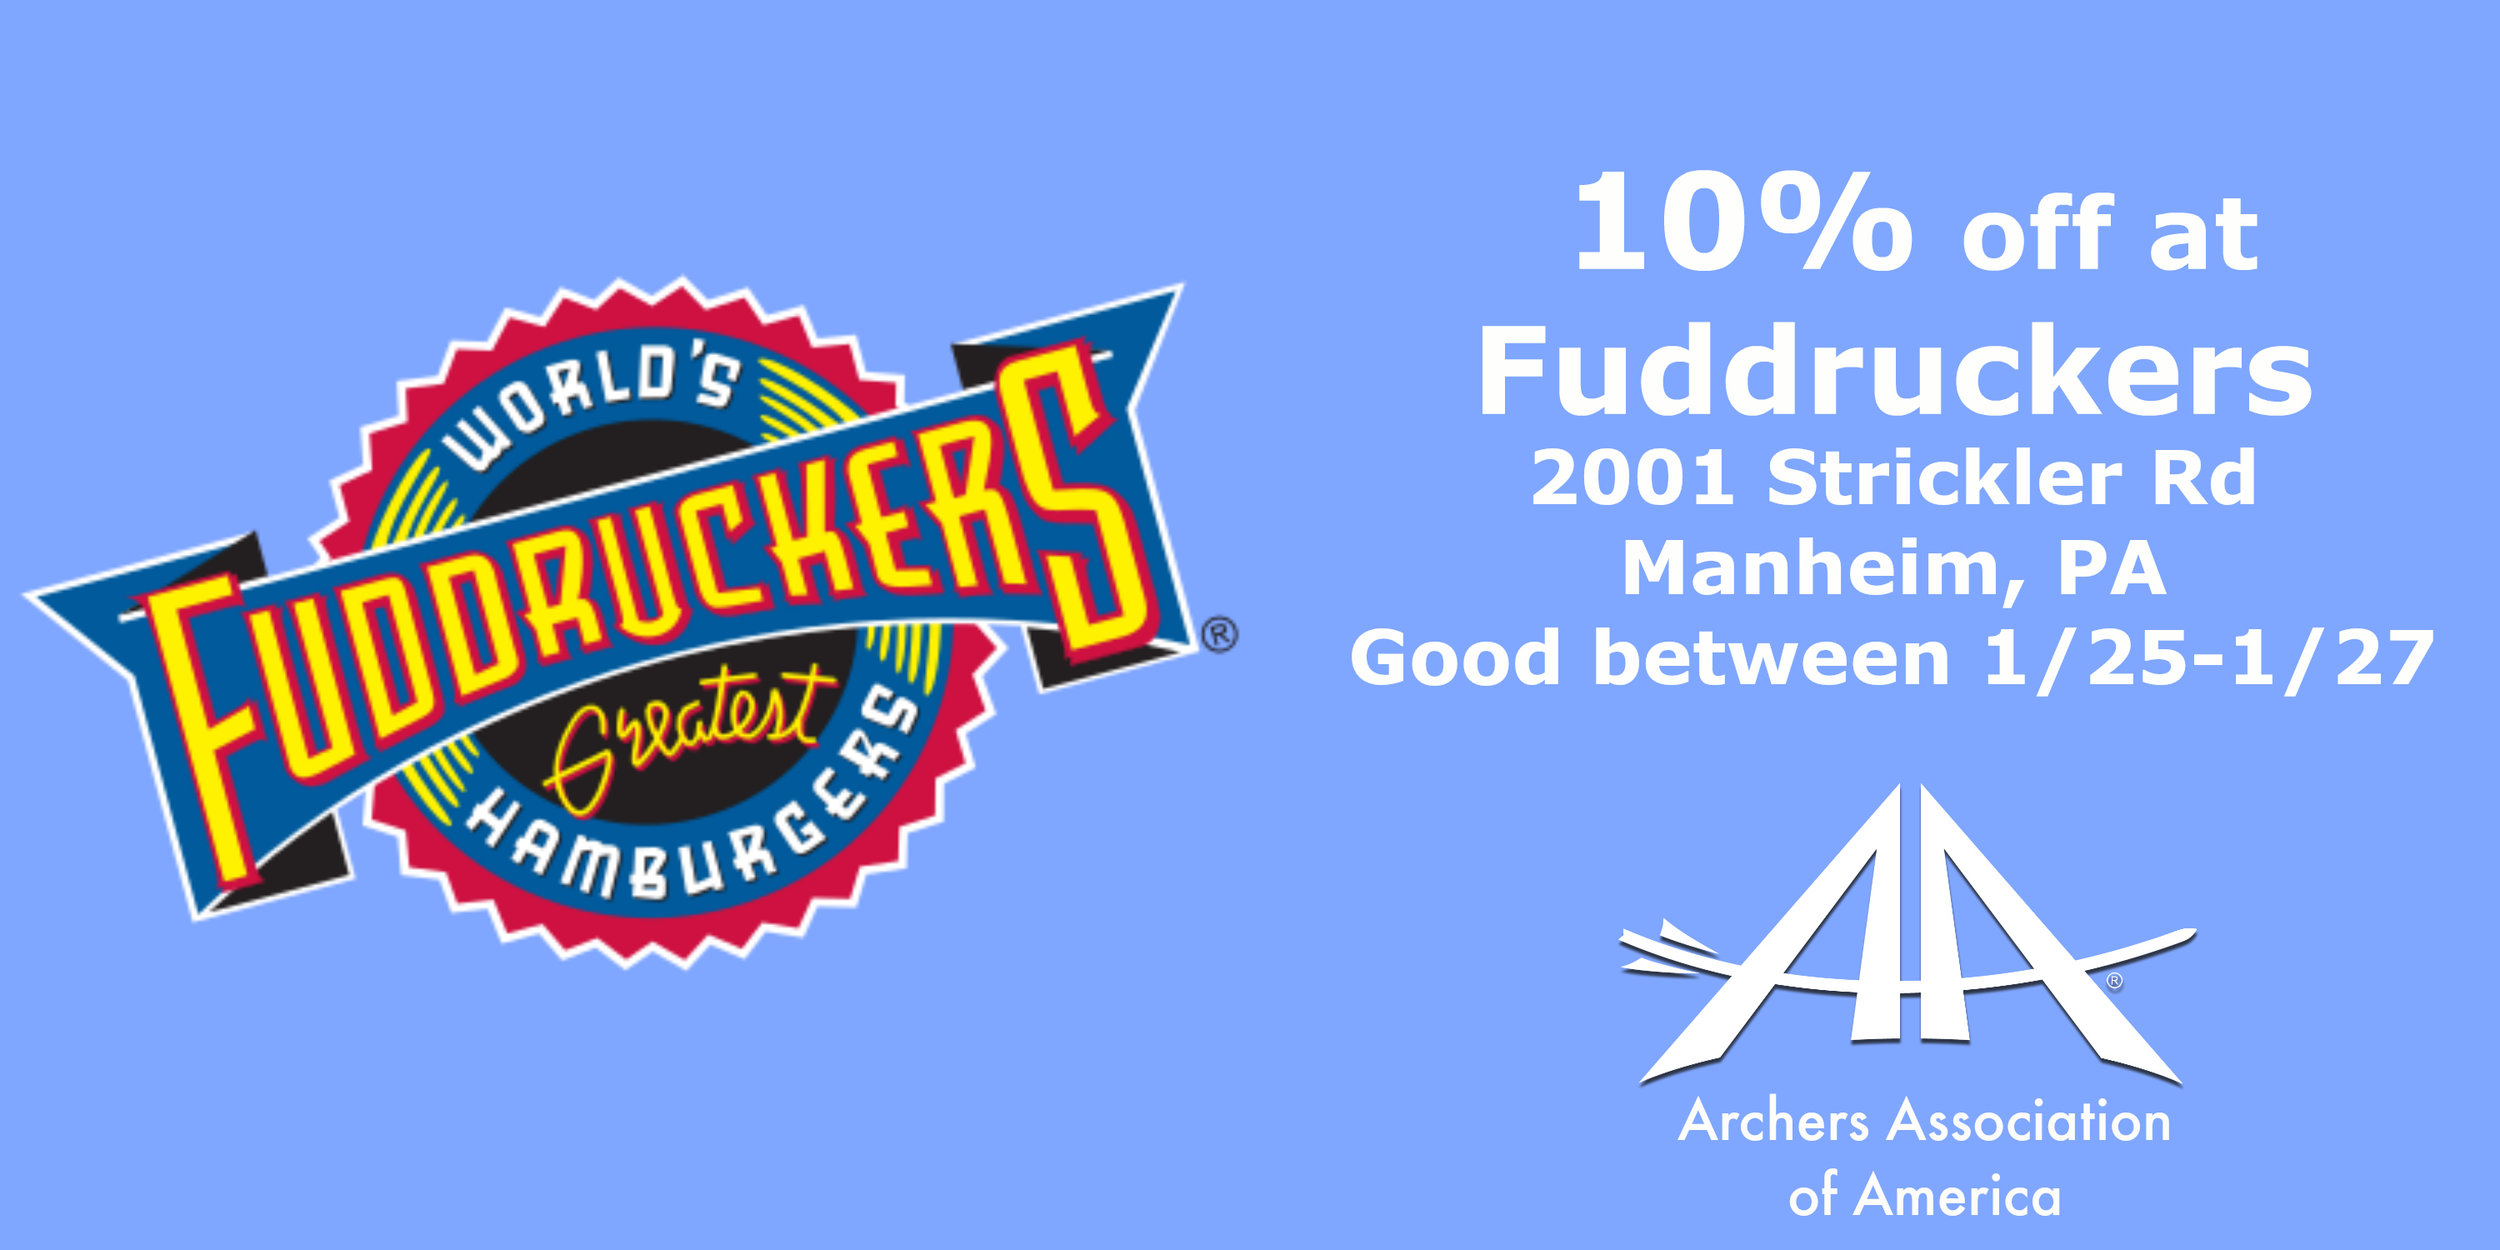 Fuddruckers - 10% discount; show this coupon.